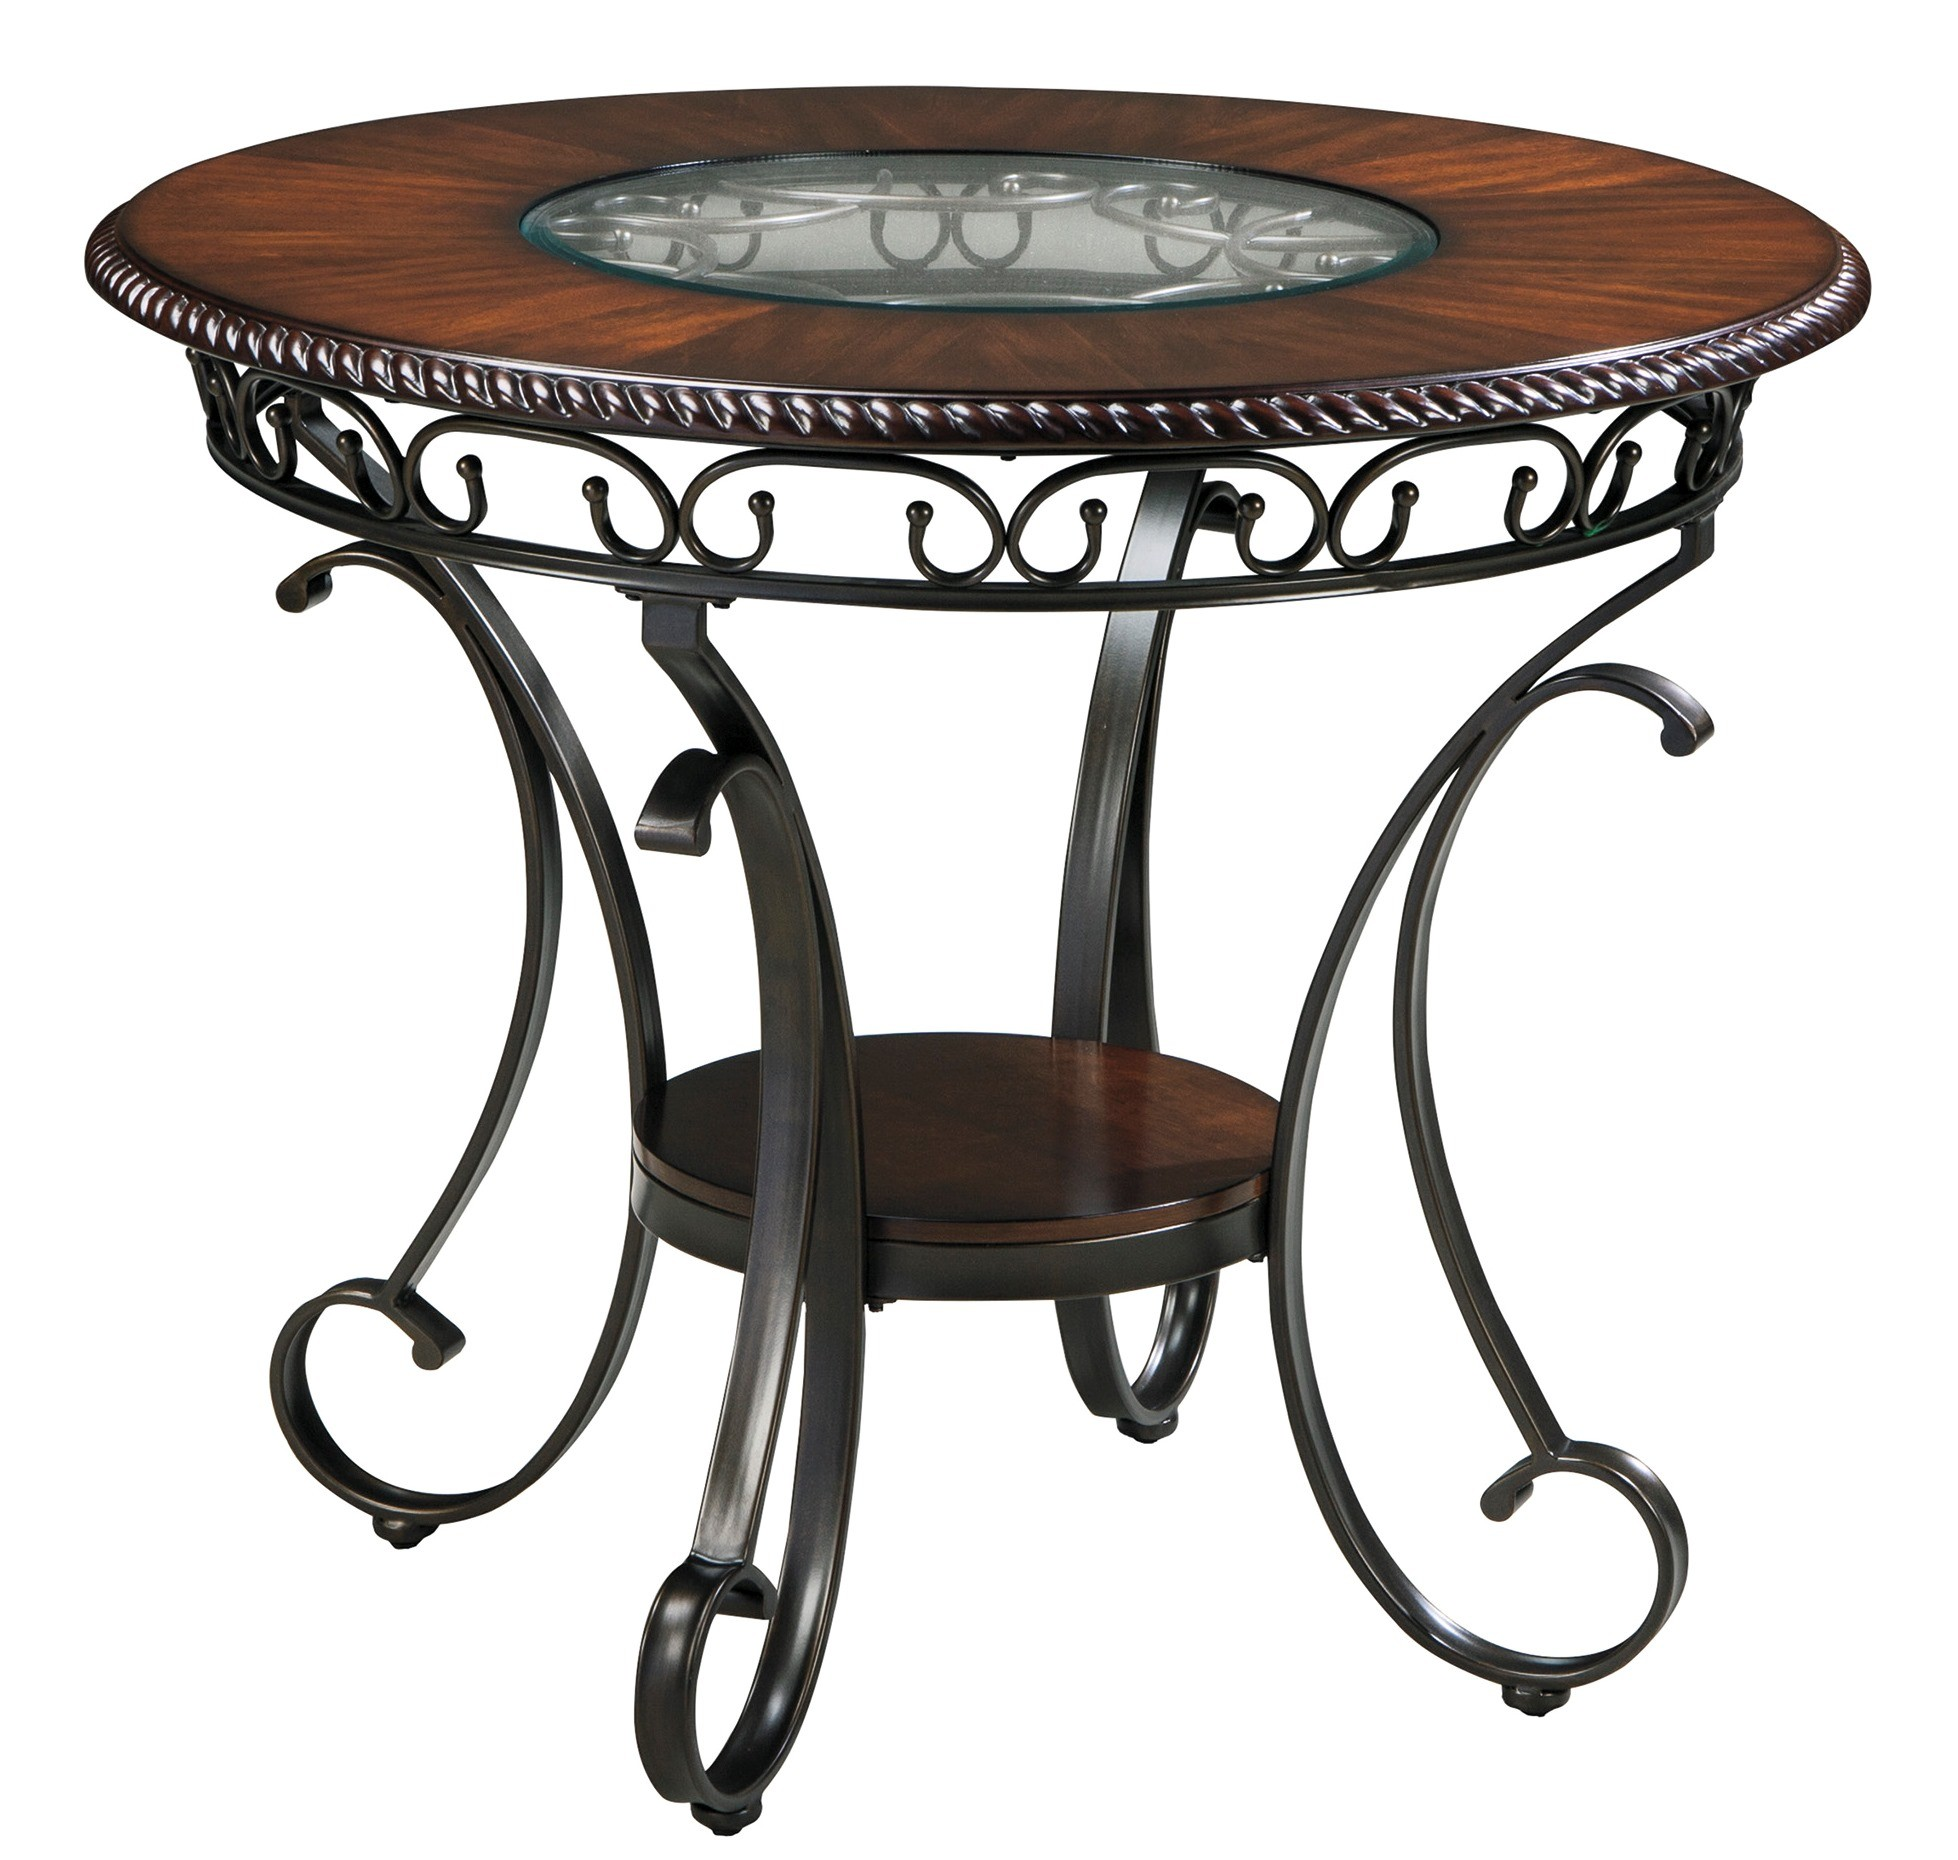 Glambrey round dining room counter table from ashley d329 for Round dining room tables